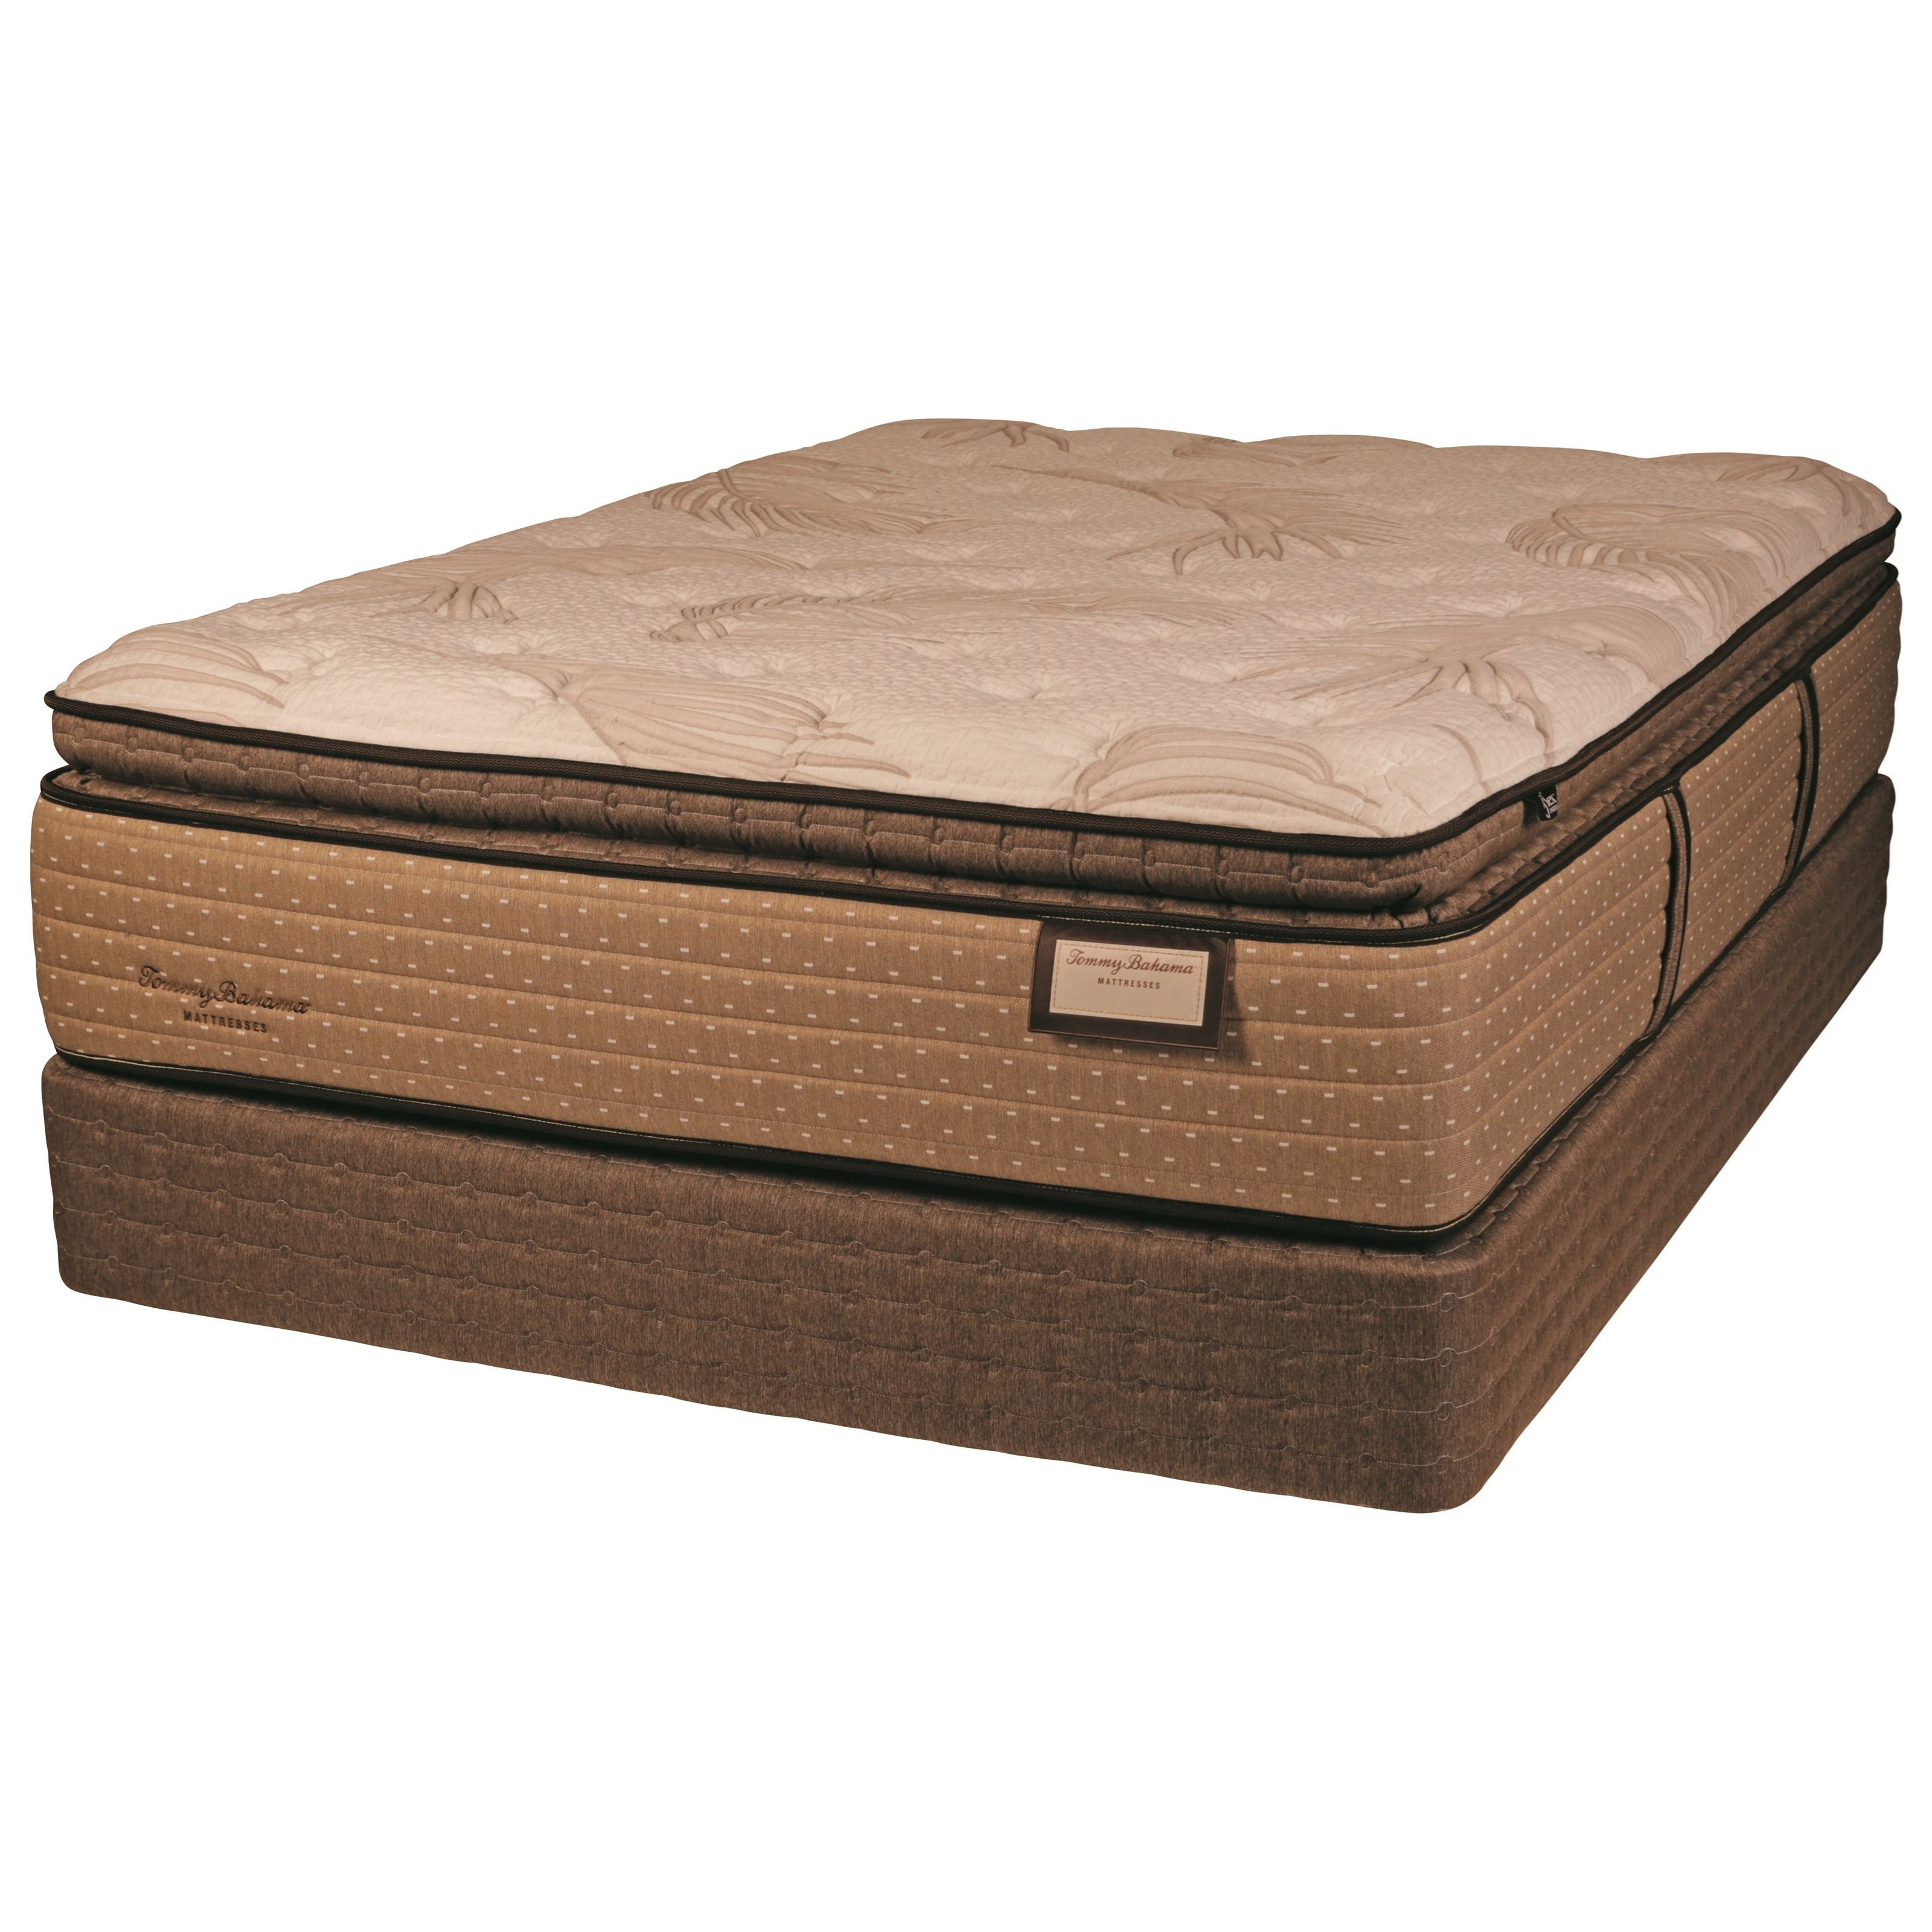 Tommy Bahama Sea Shell Wishes PT Queen Pillow Top Luxury Mattress Set by Tommy Bahama Mattress at Baer's Furniture